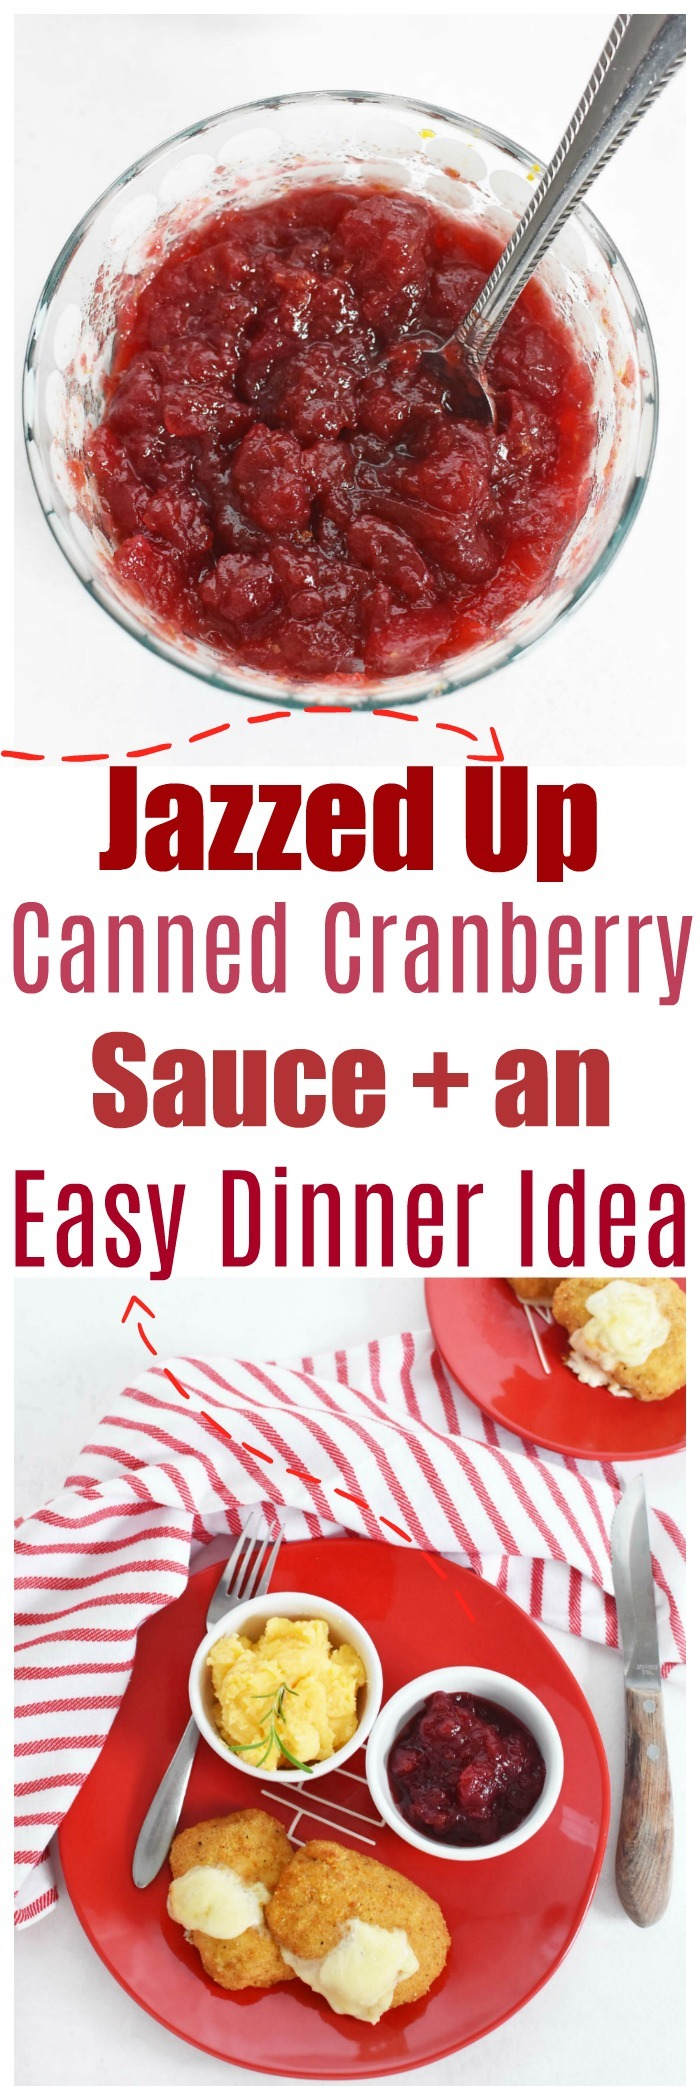 Canned Cranberry Sauce Recipe + Easy Dinner Idea